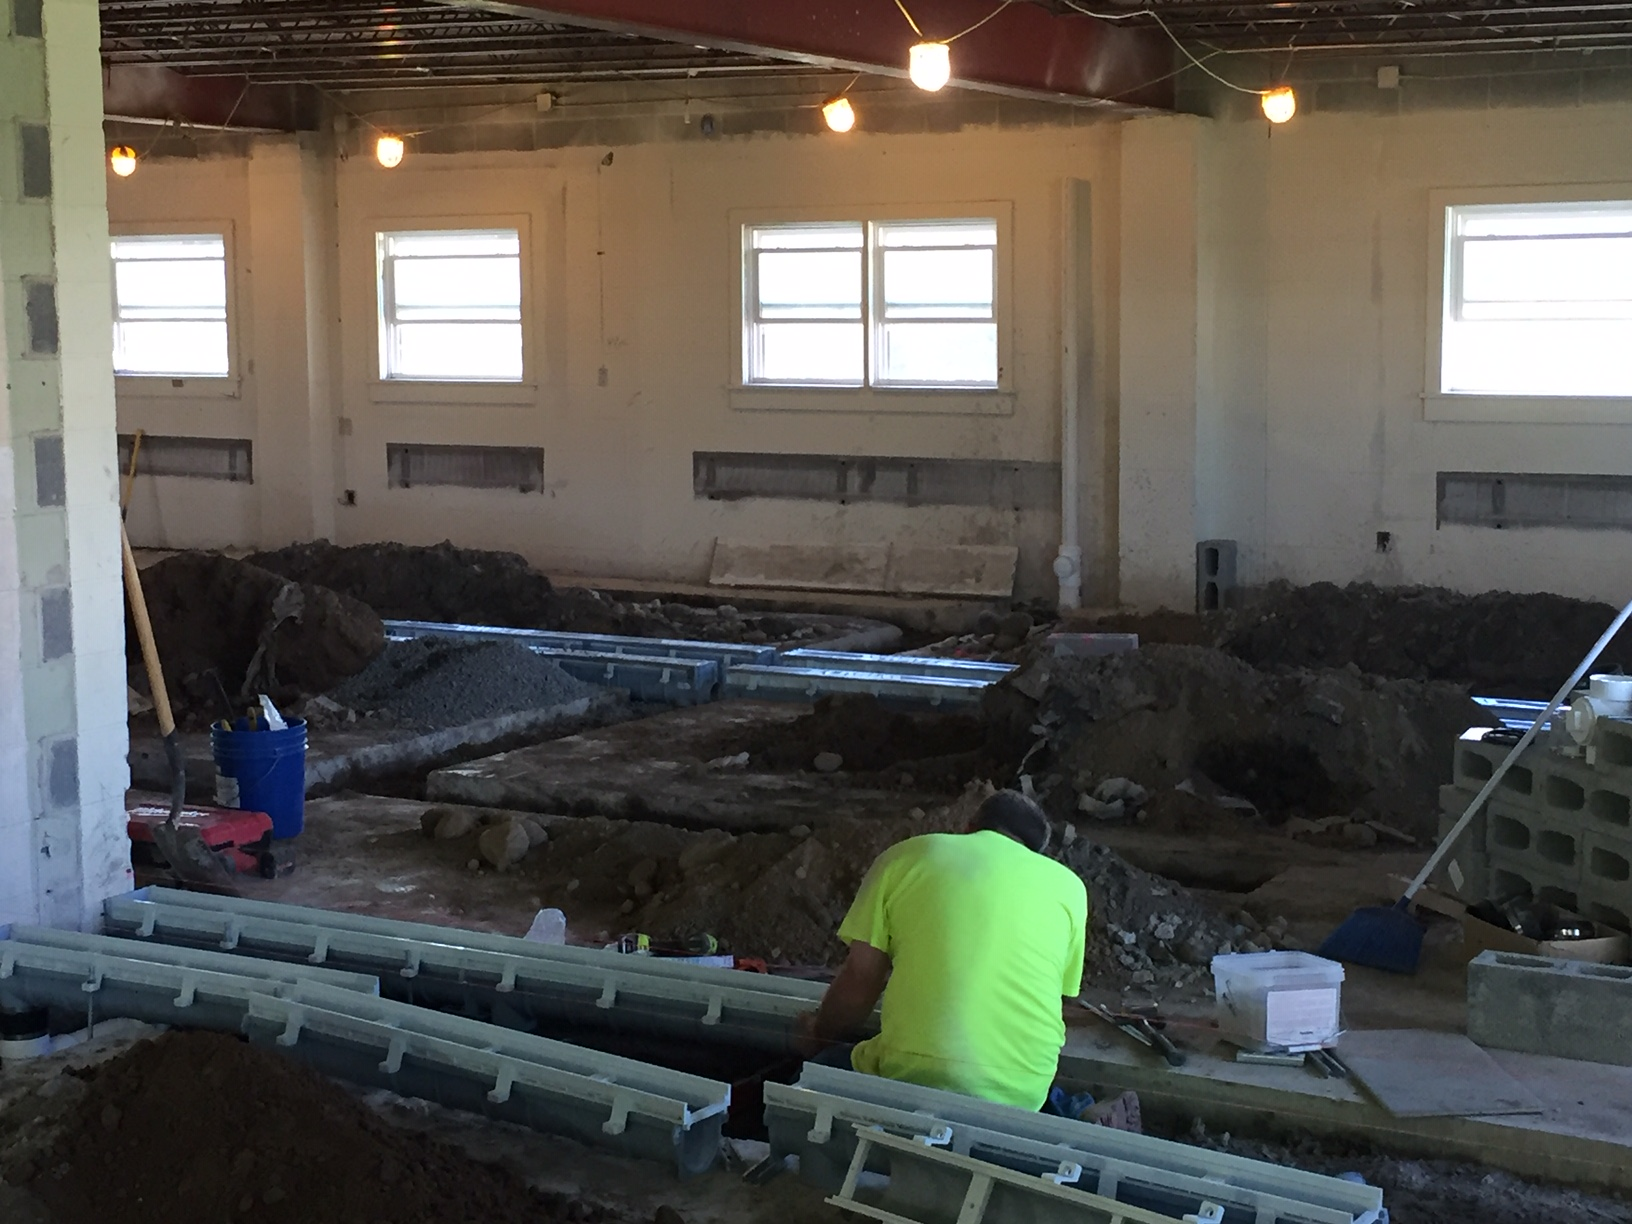 Kennel drains being placed